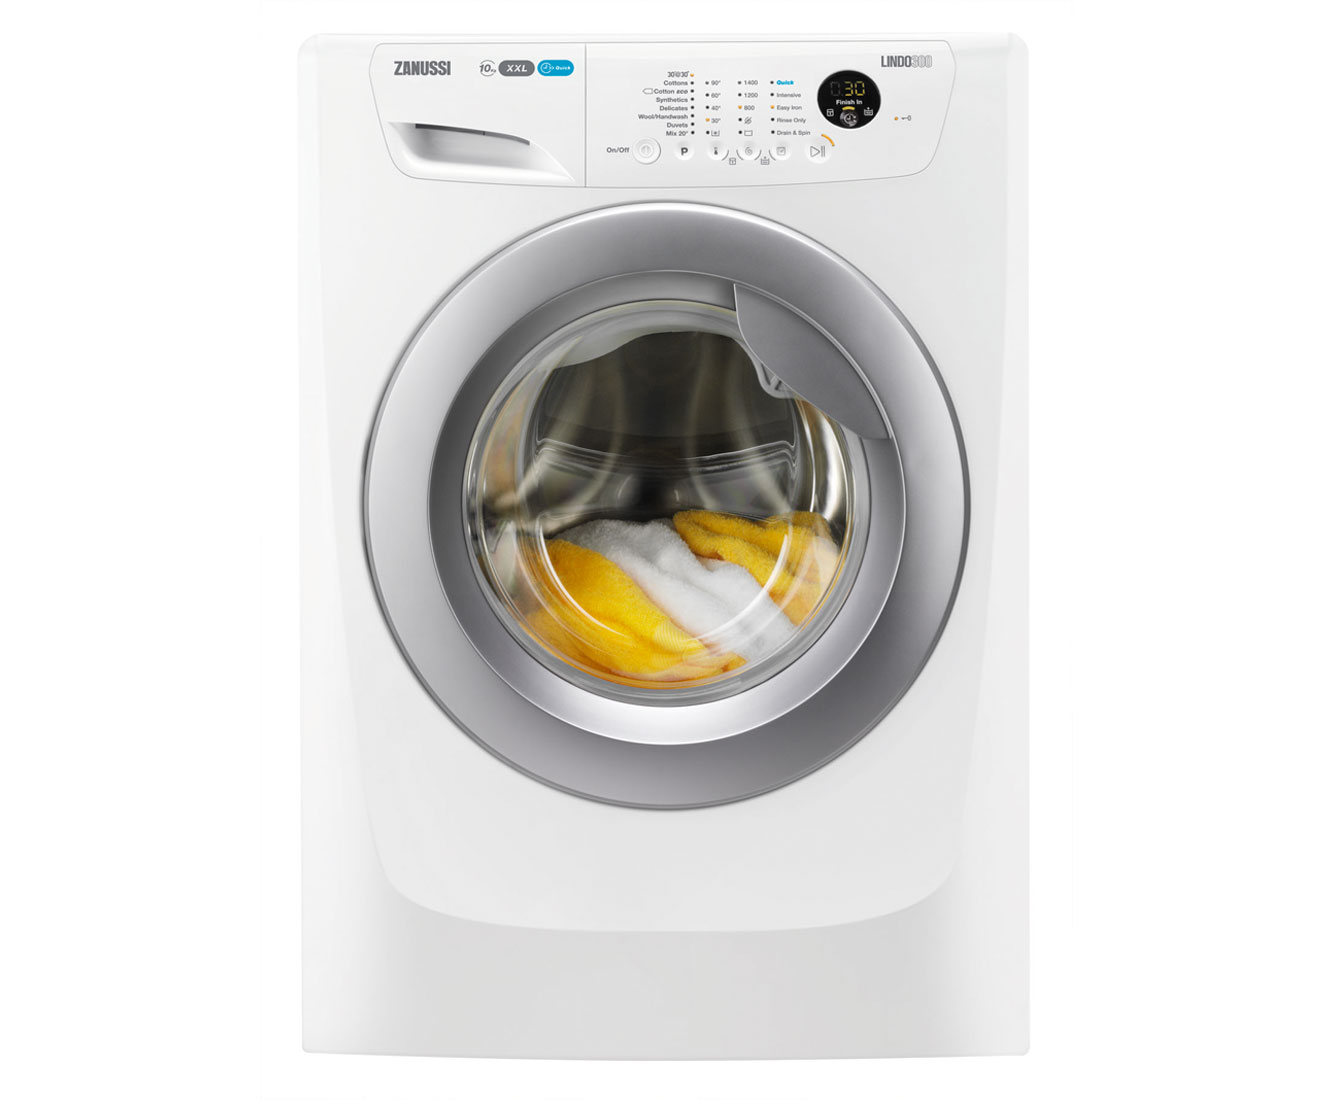 Zanussi Lindo300 Zwf01483wr 10kg Washing Machine With 1400 Rpm Indesit Motor Wiring Diagram White A Rated